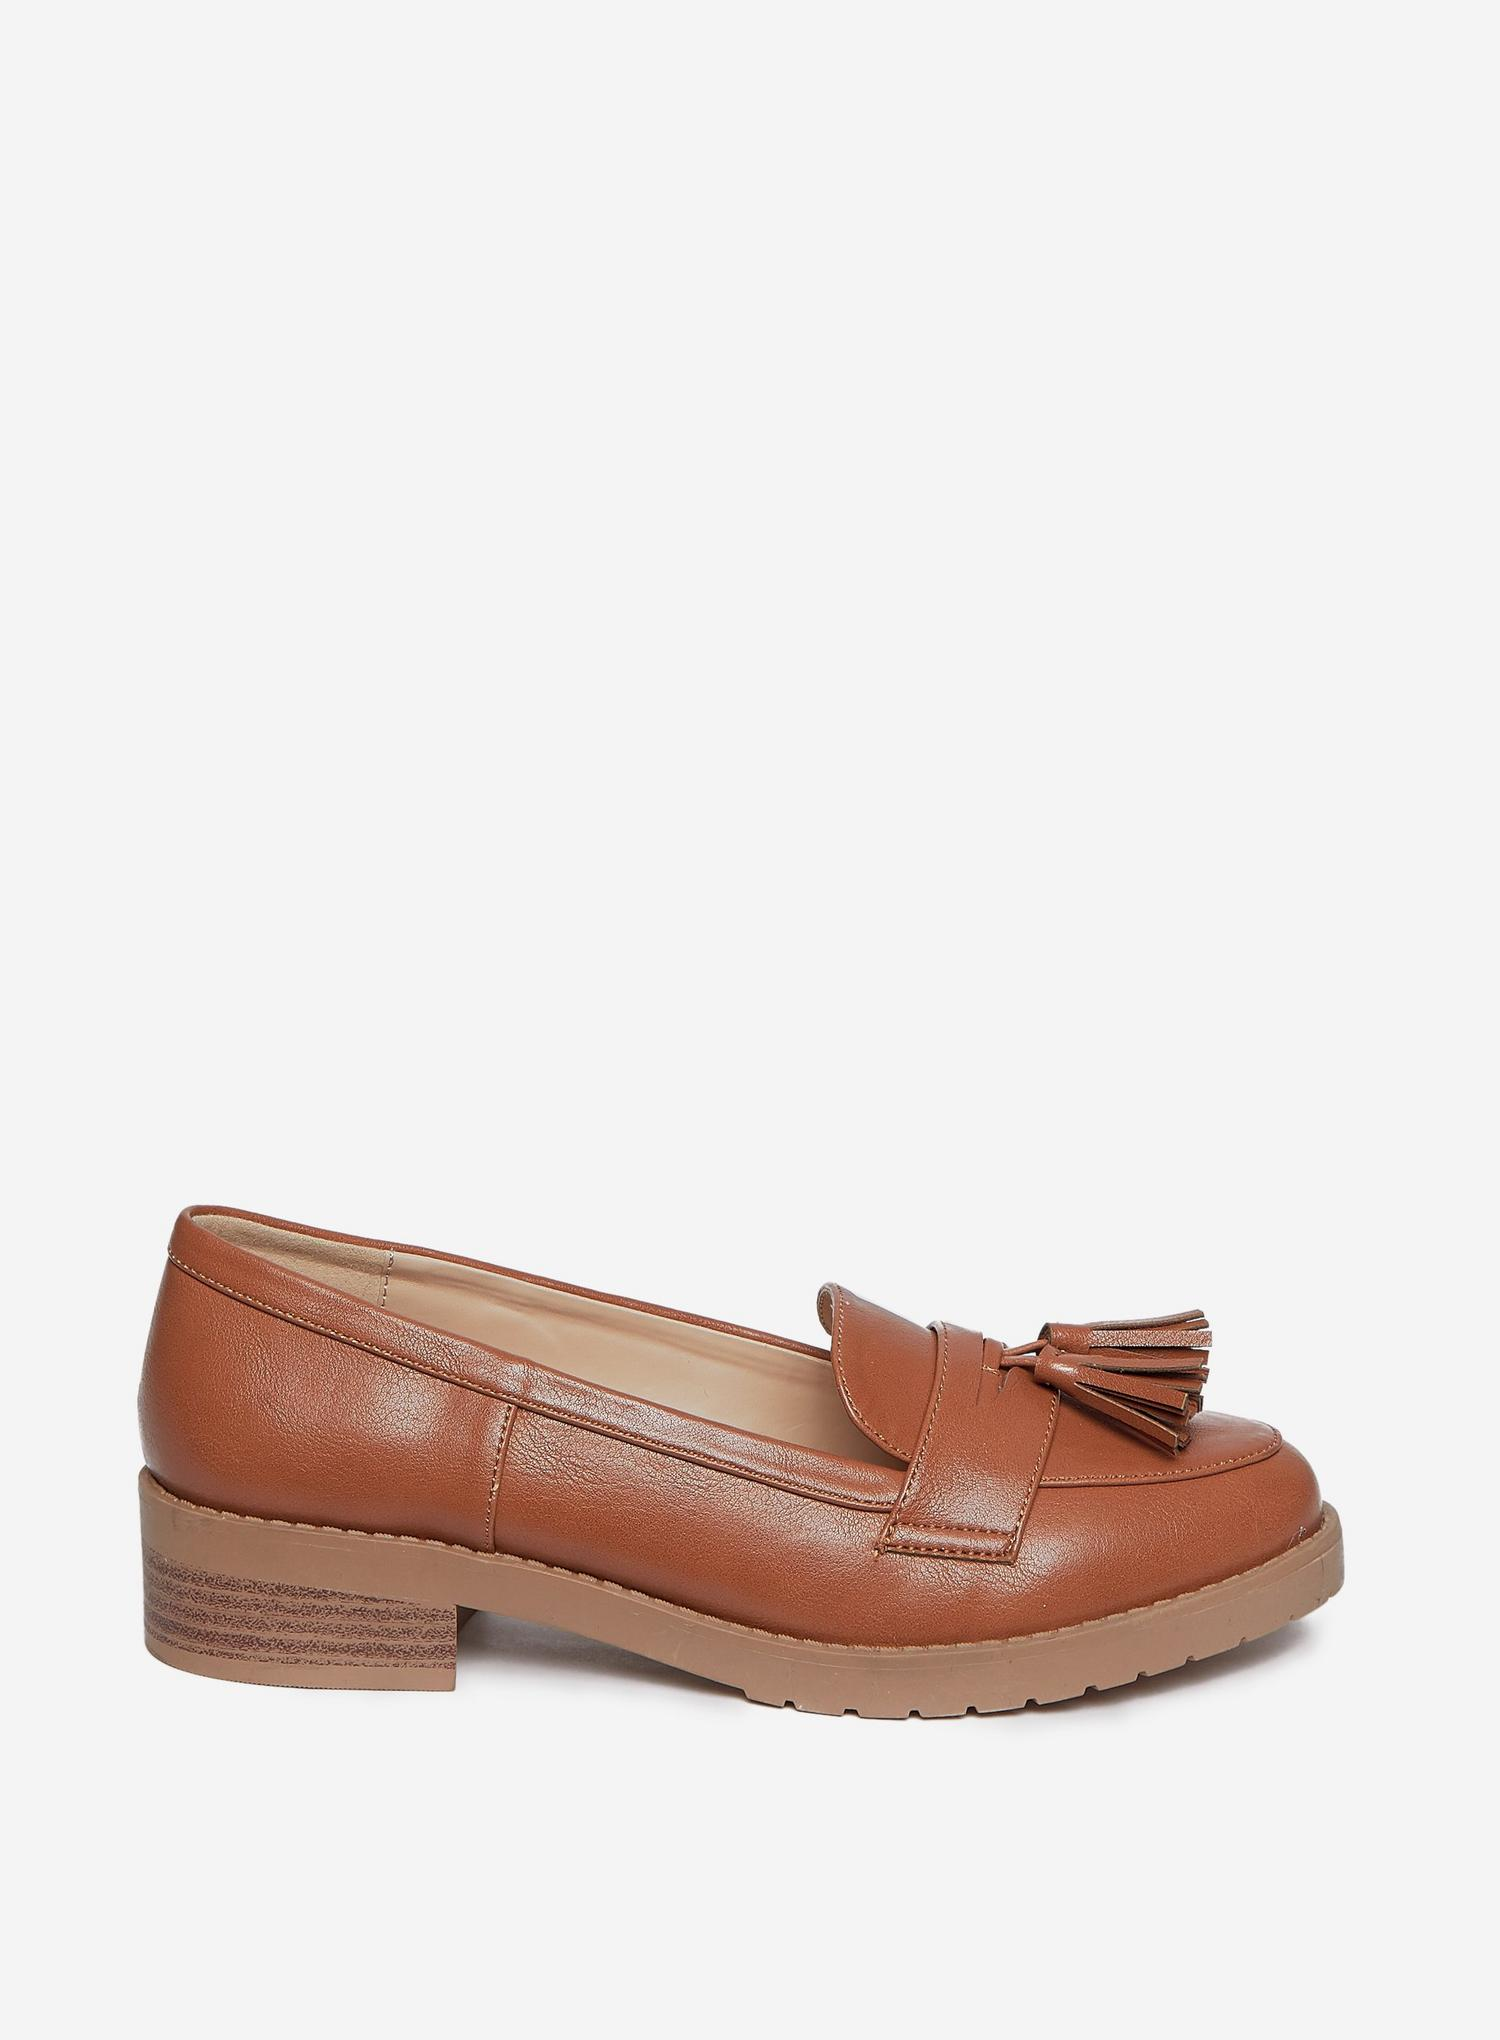 109 Wide Fit Tan Litty Loafers image number 2